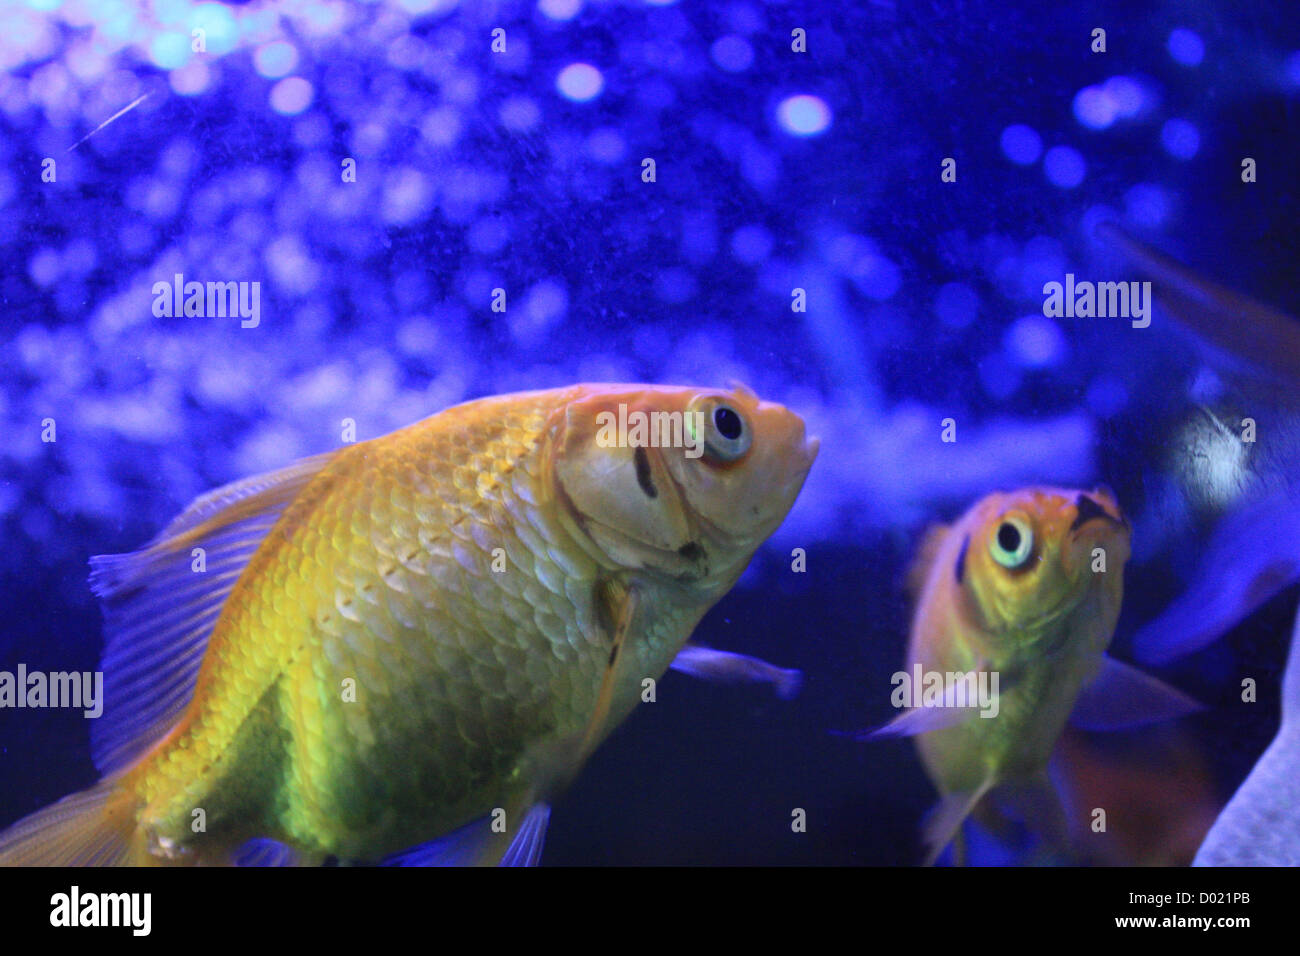 Freshwater Fish, Aquarium Fish, Tropical Fish, Pictures Of Fish, Fish  Tanks, Fish For Sale, All About Fish, Salt Water Fish, Che